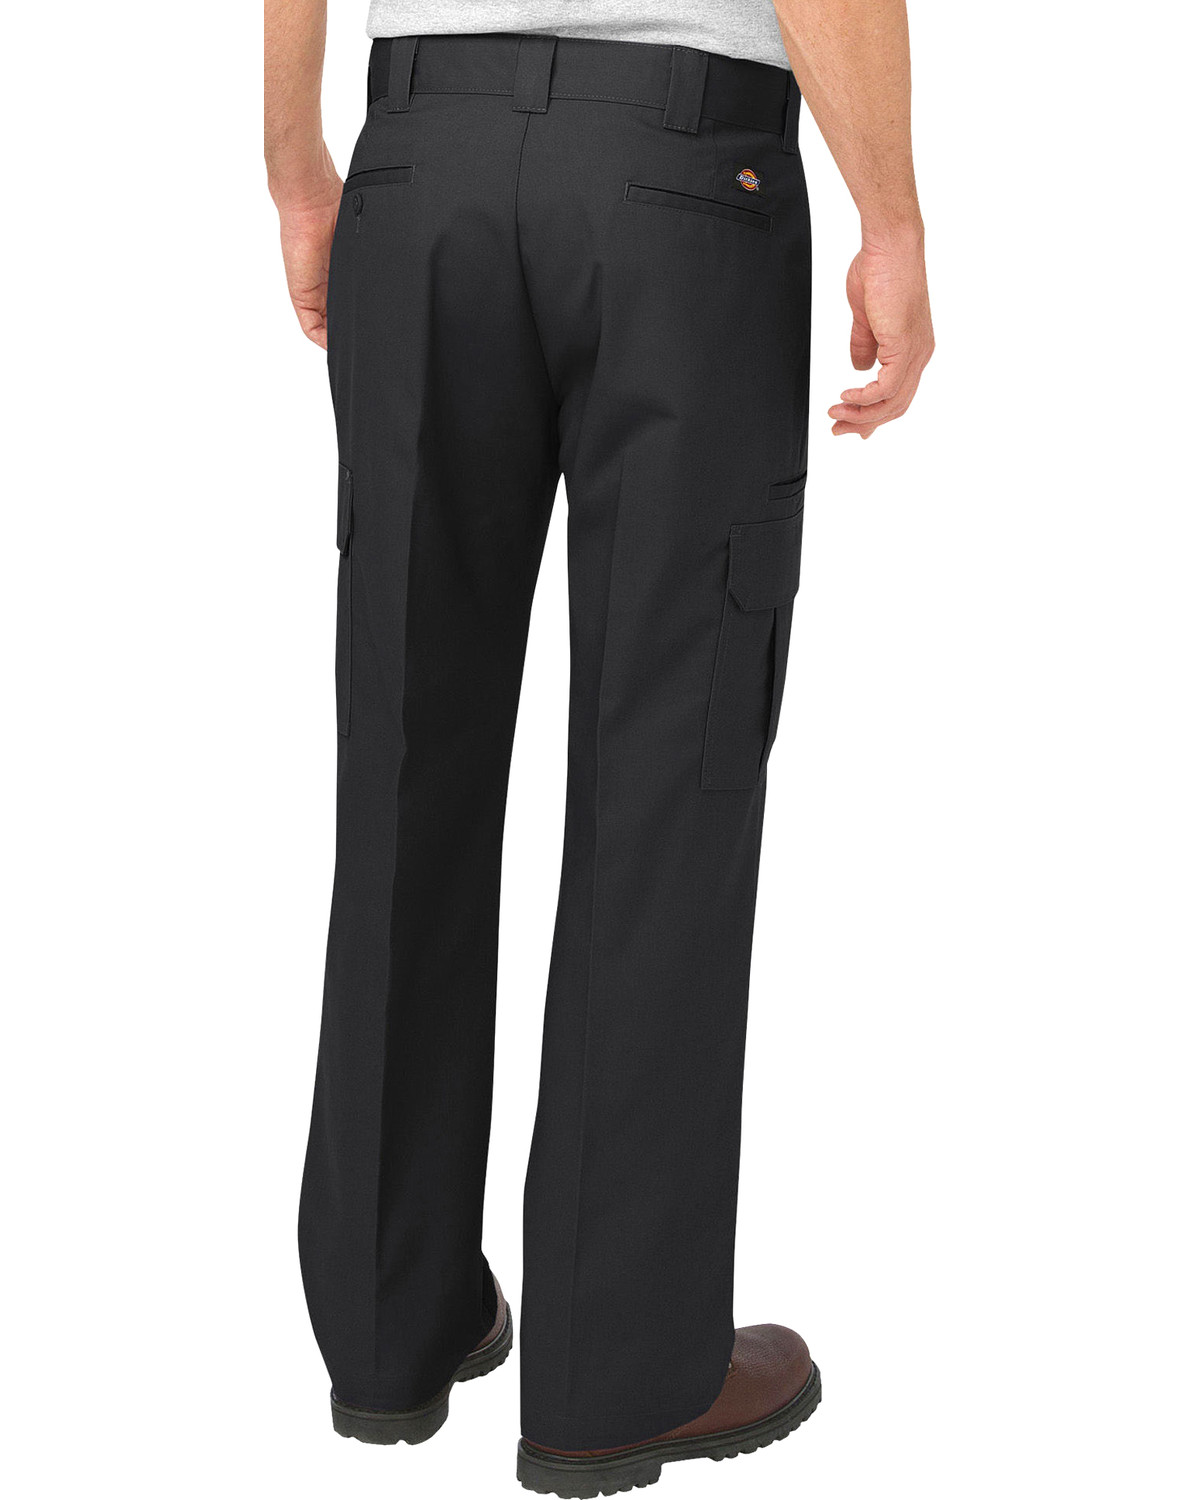 026c6c40 Zoomed Image Dickies Men's FLEX Relaxed Fit Straight Leg Cargo Pants, Black,  ...